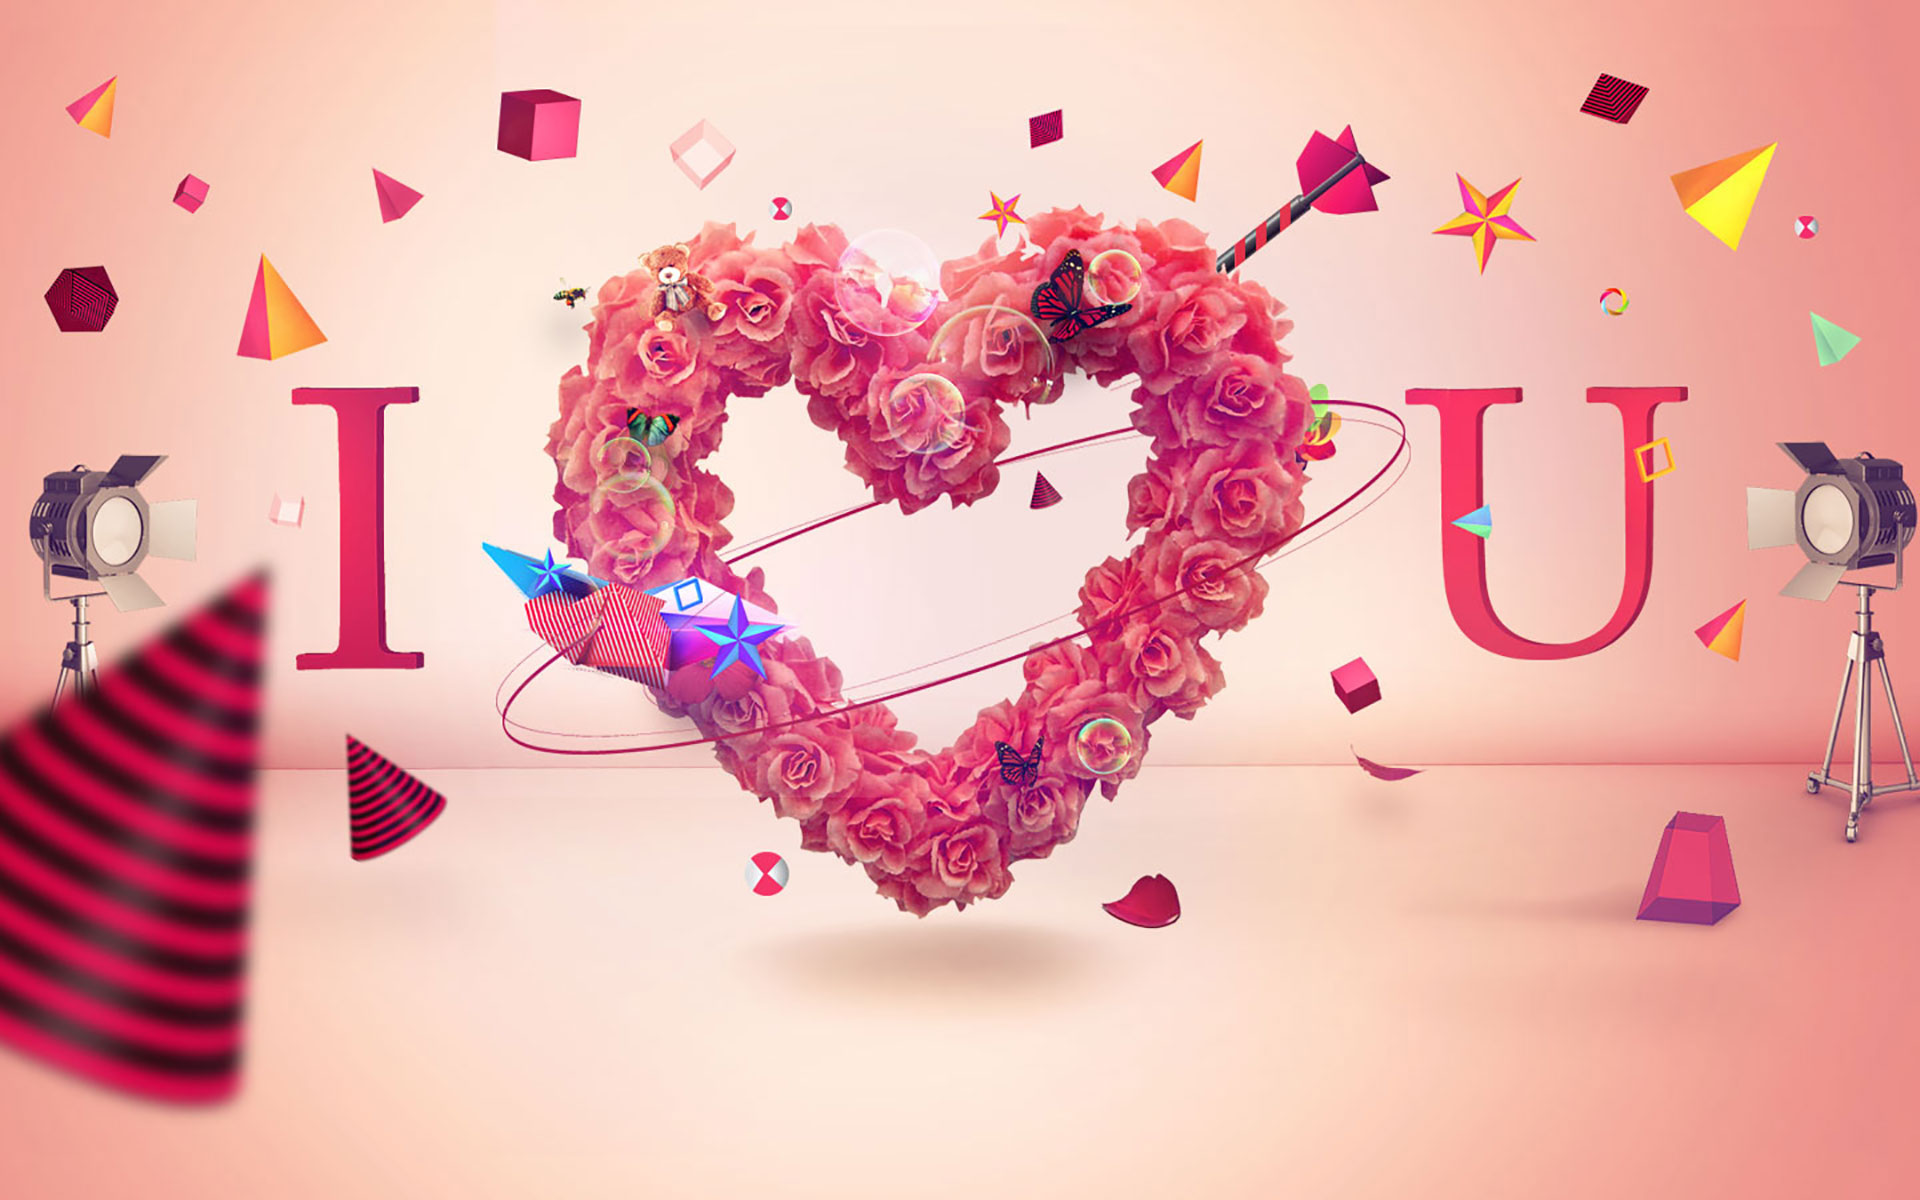 Free Download HD Wallpapers Of Love